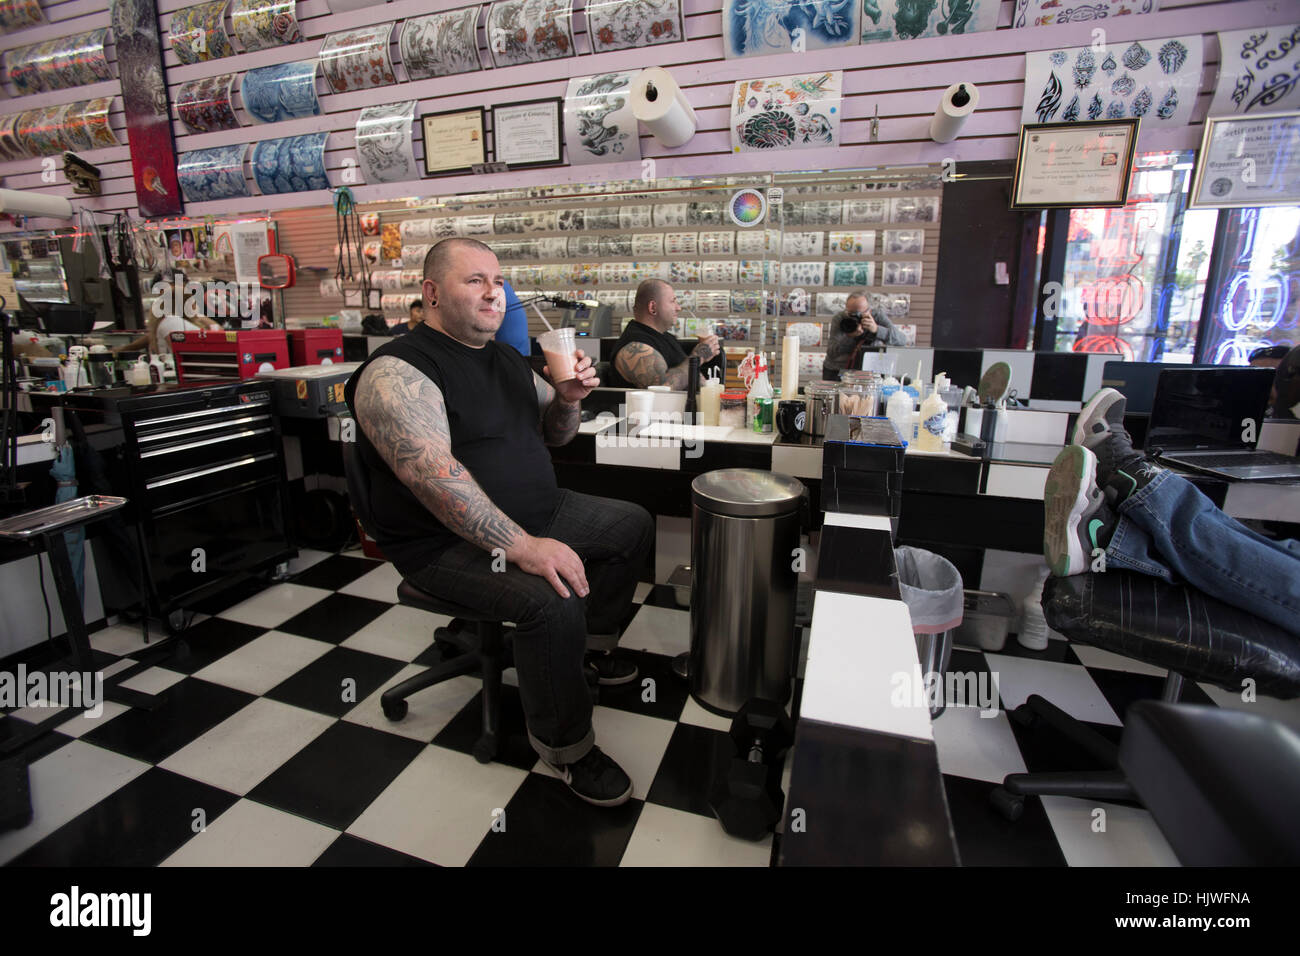 Tattoo Artist, Hollywood Boulevard, Hollywood, Los Angeles, California, USA - Stock Image